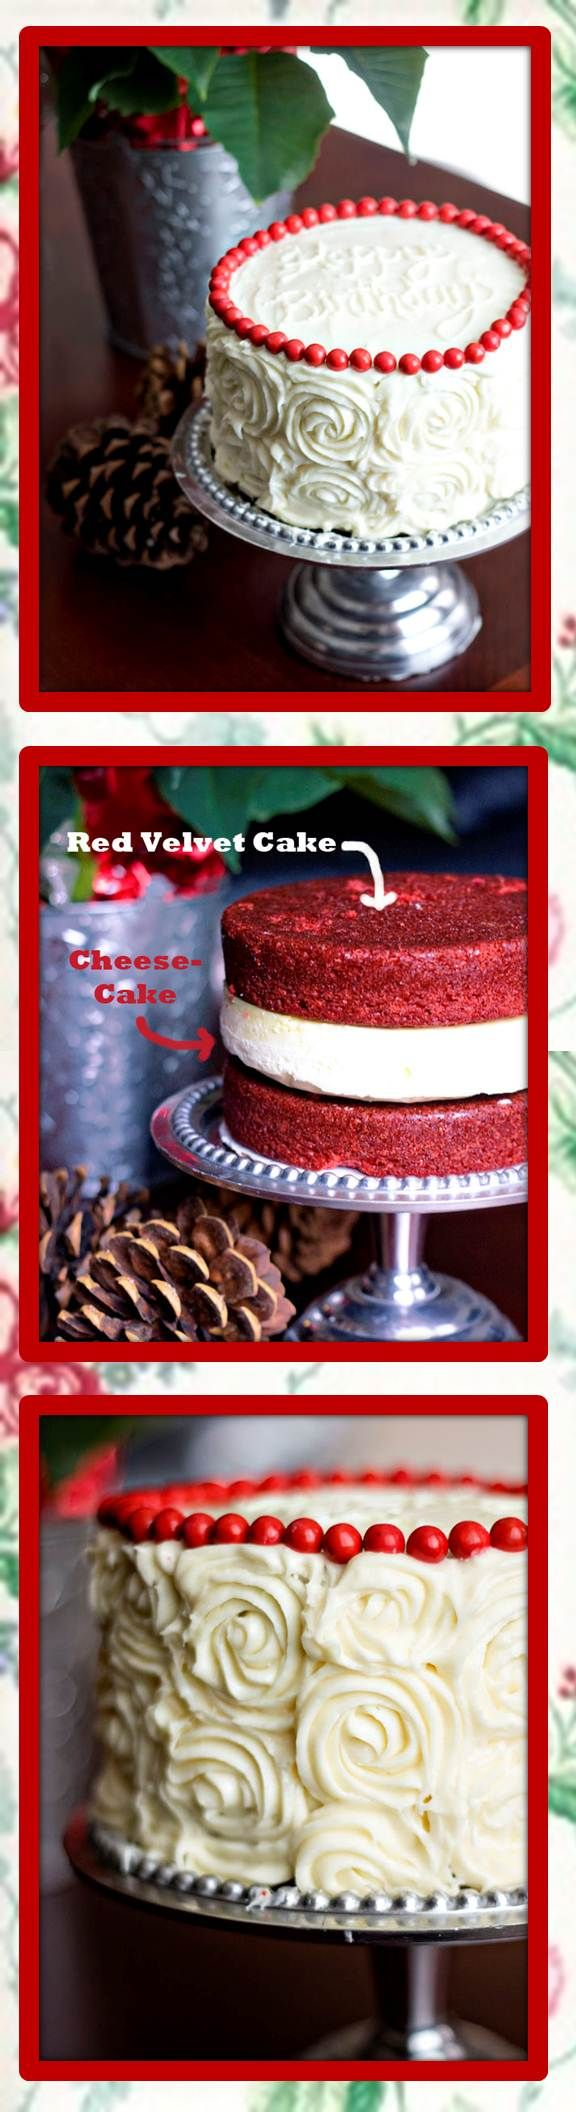 """Red Velvet Cheesecake: This cake has a layer of creamy cheesecake sandwiched between two layers of moist red velvet cake. This recipe concept is borrowed from the Cheesecake Factory's menu, the Ultimate Red Velvet Cake Cheesecake. """"Ultimate"""" is definitely an accurate description for this cake masterpiece."""